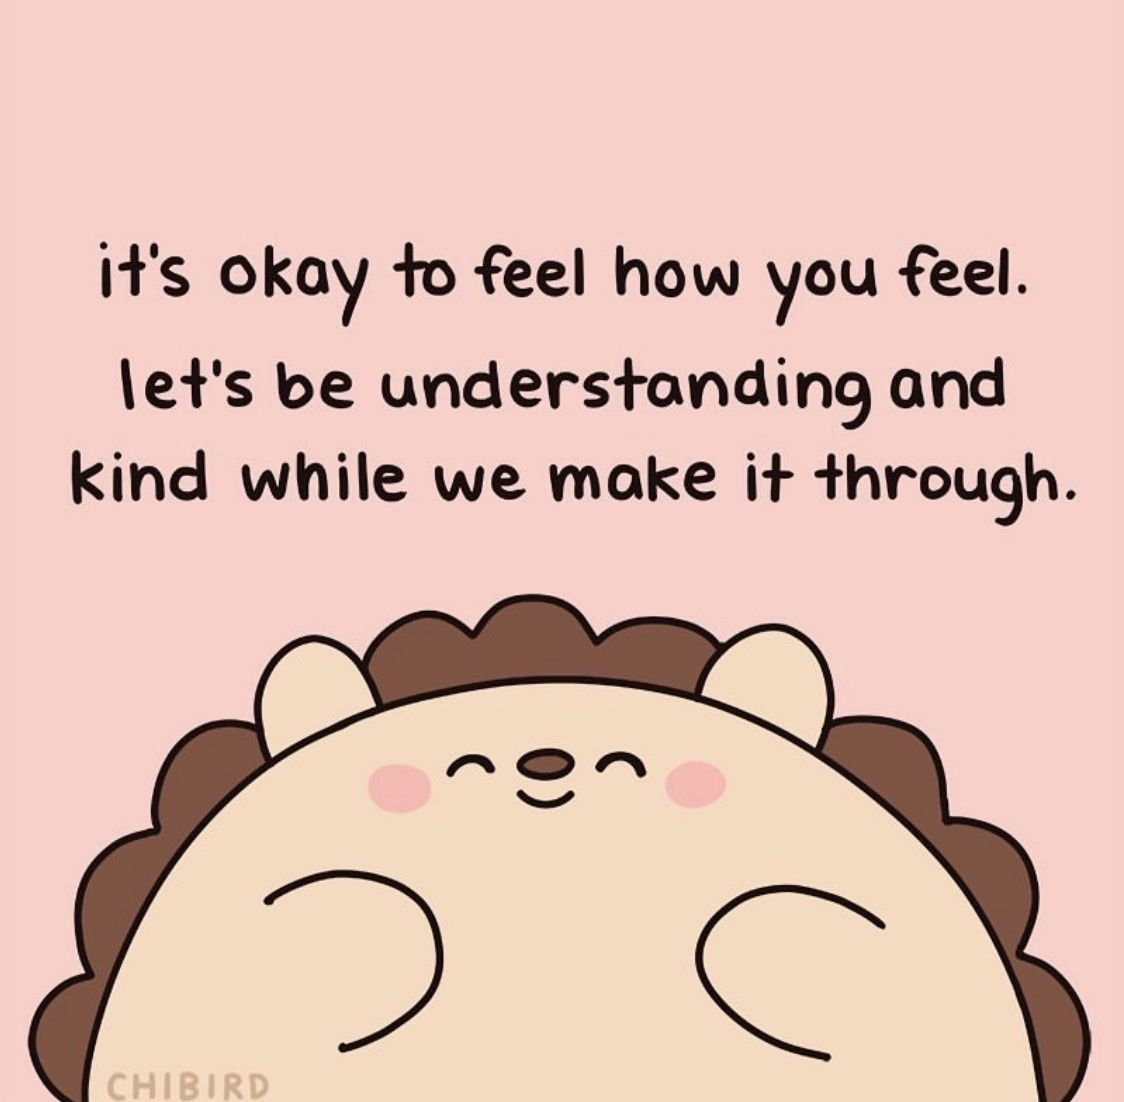 Chibird Drawing Cheer Up Quotes Cute Quotes Chibird